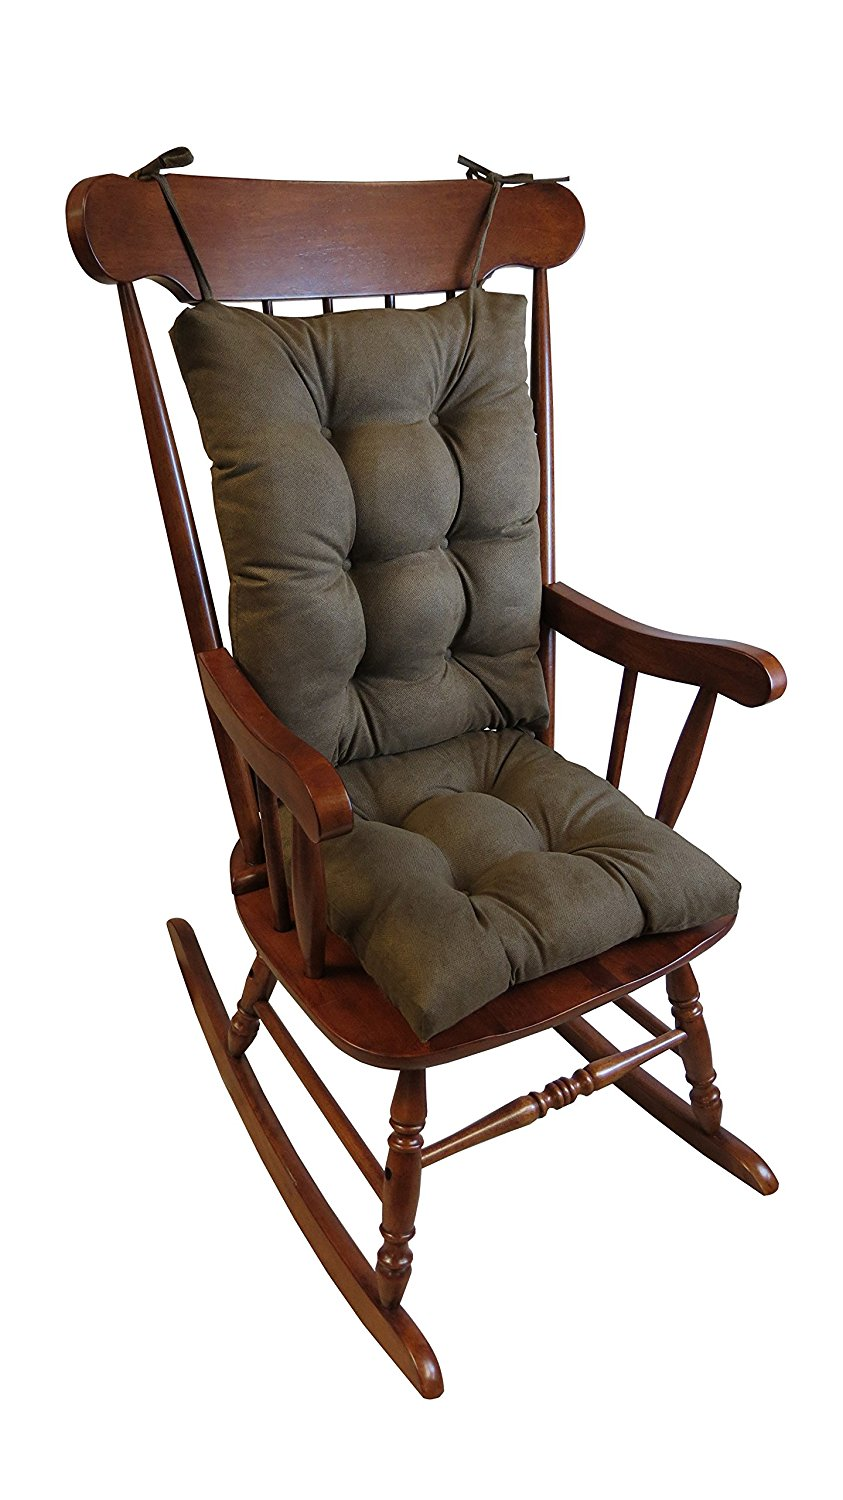 Delicieux The Gripper Non Slip Rocking Chair Cushion Set Honeycomb, X Large,  Chocolate   Walmart.com